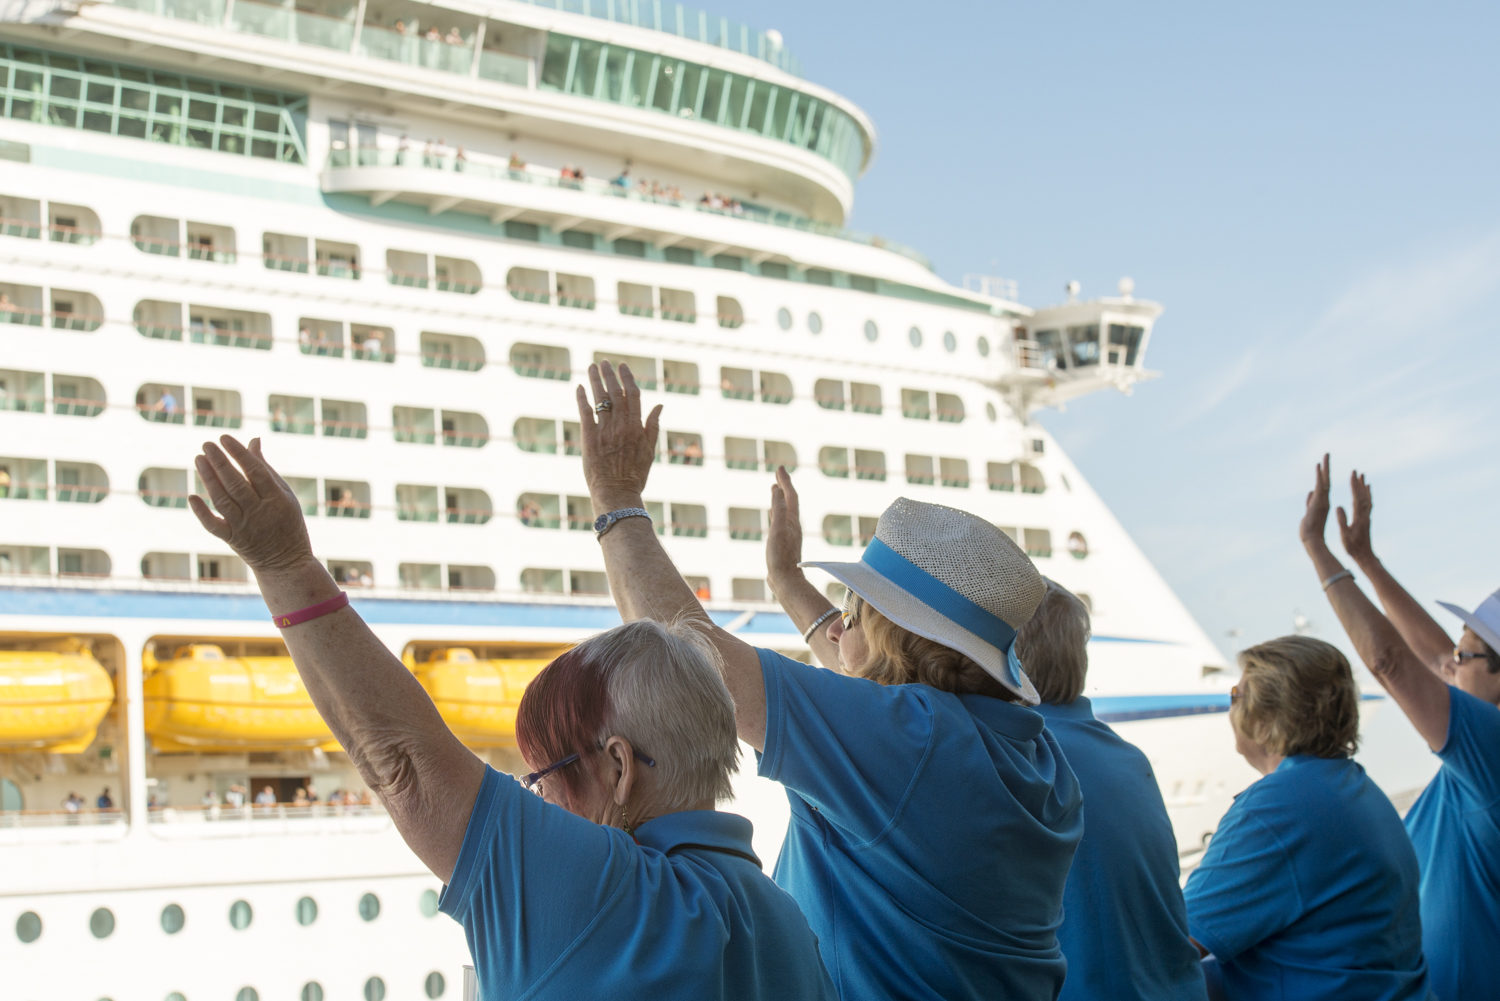 A cruise ship is one HUGE reflector. Look at the light on the faces. l